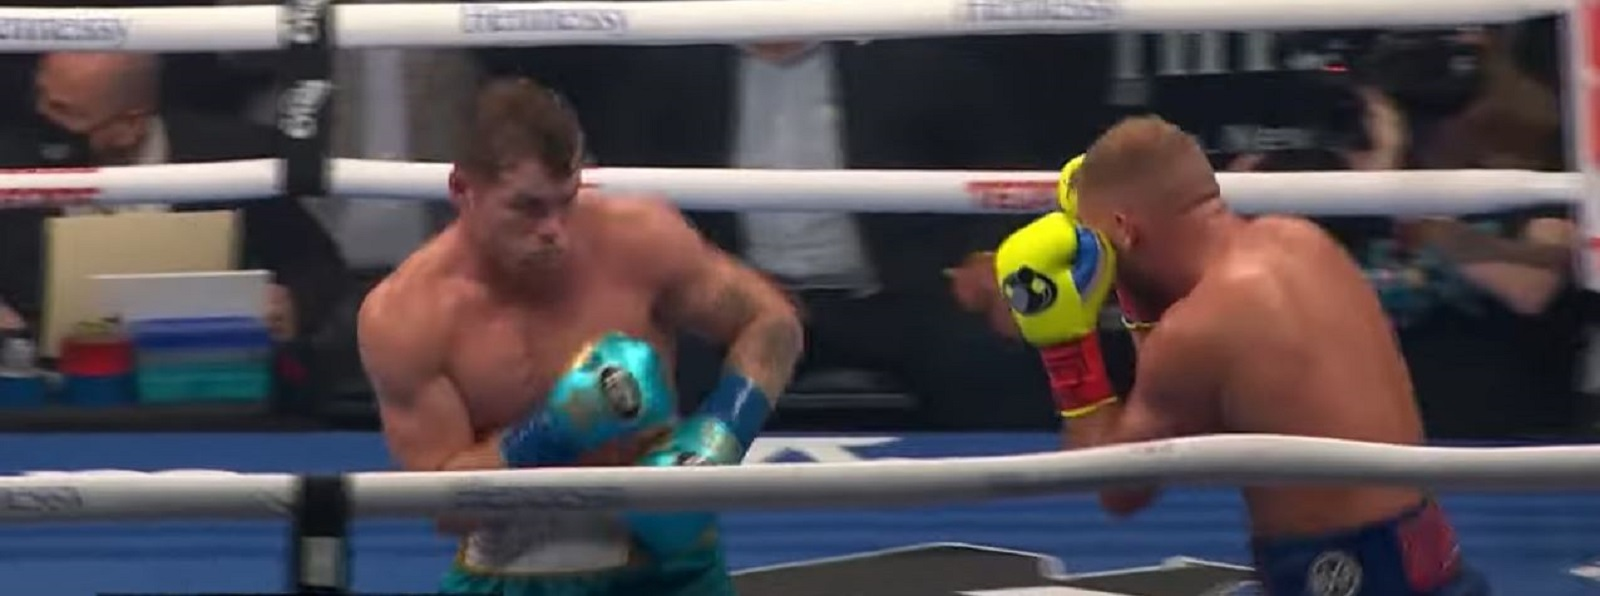 Manny Pacquiao Reacts To Canelo Stopping Saunders